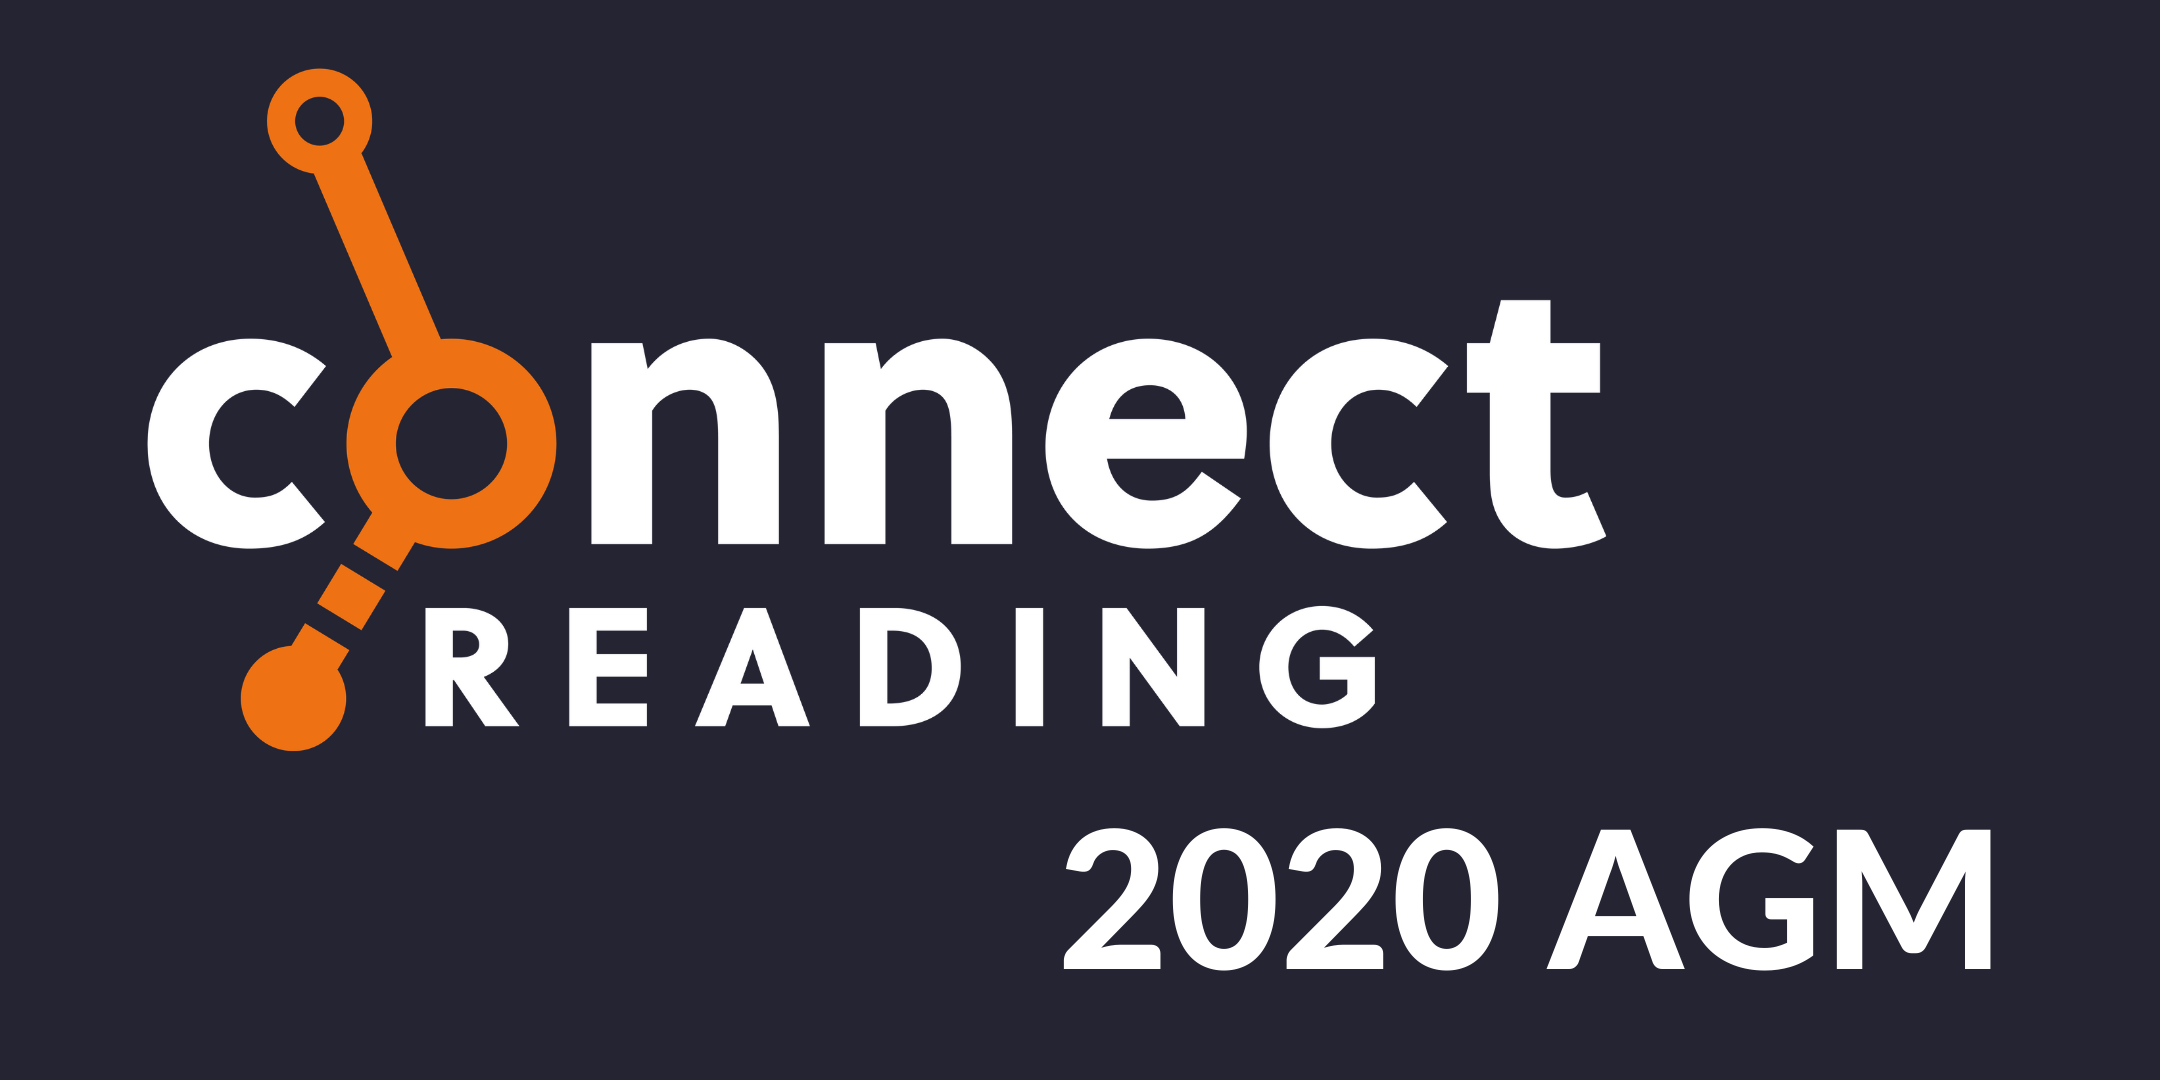 Minutes of Connect Reading AGM 2019/20